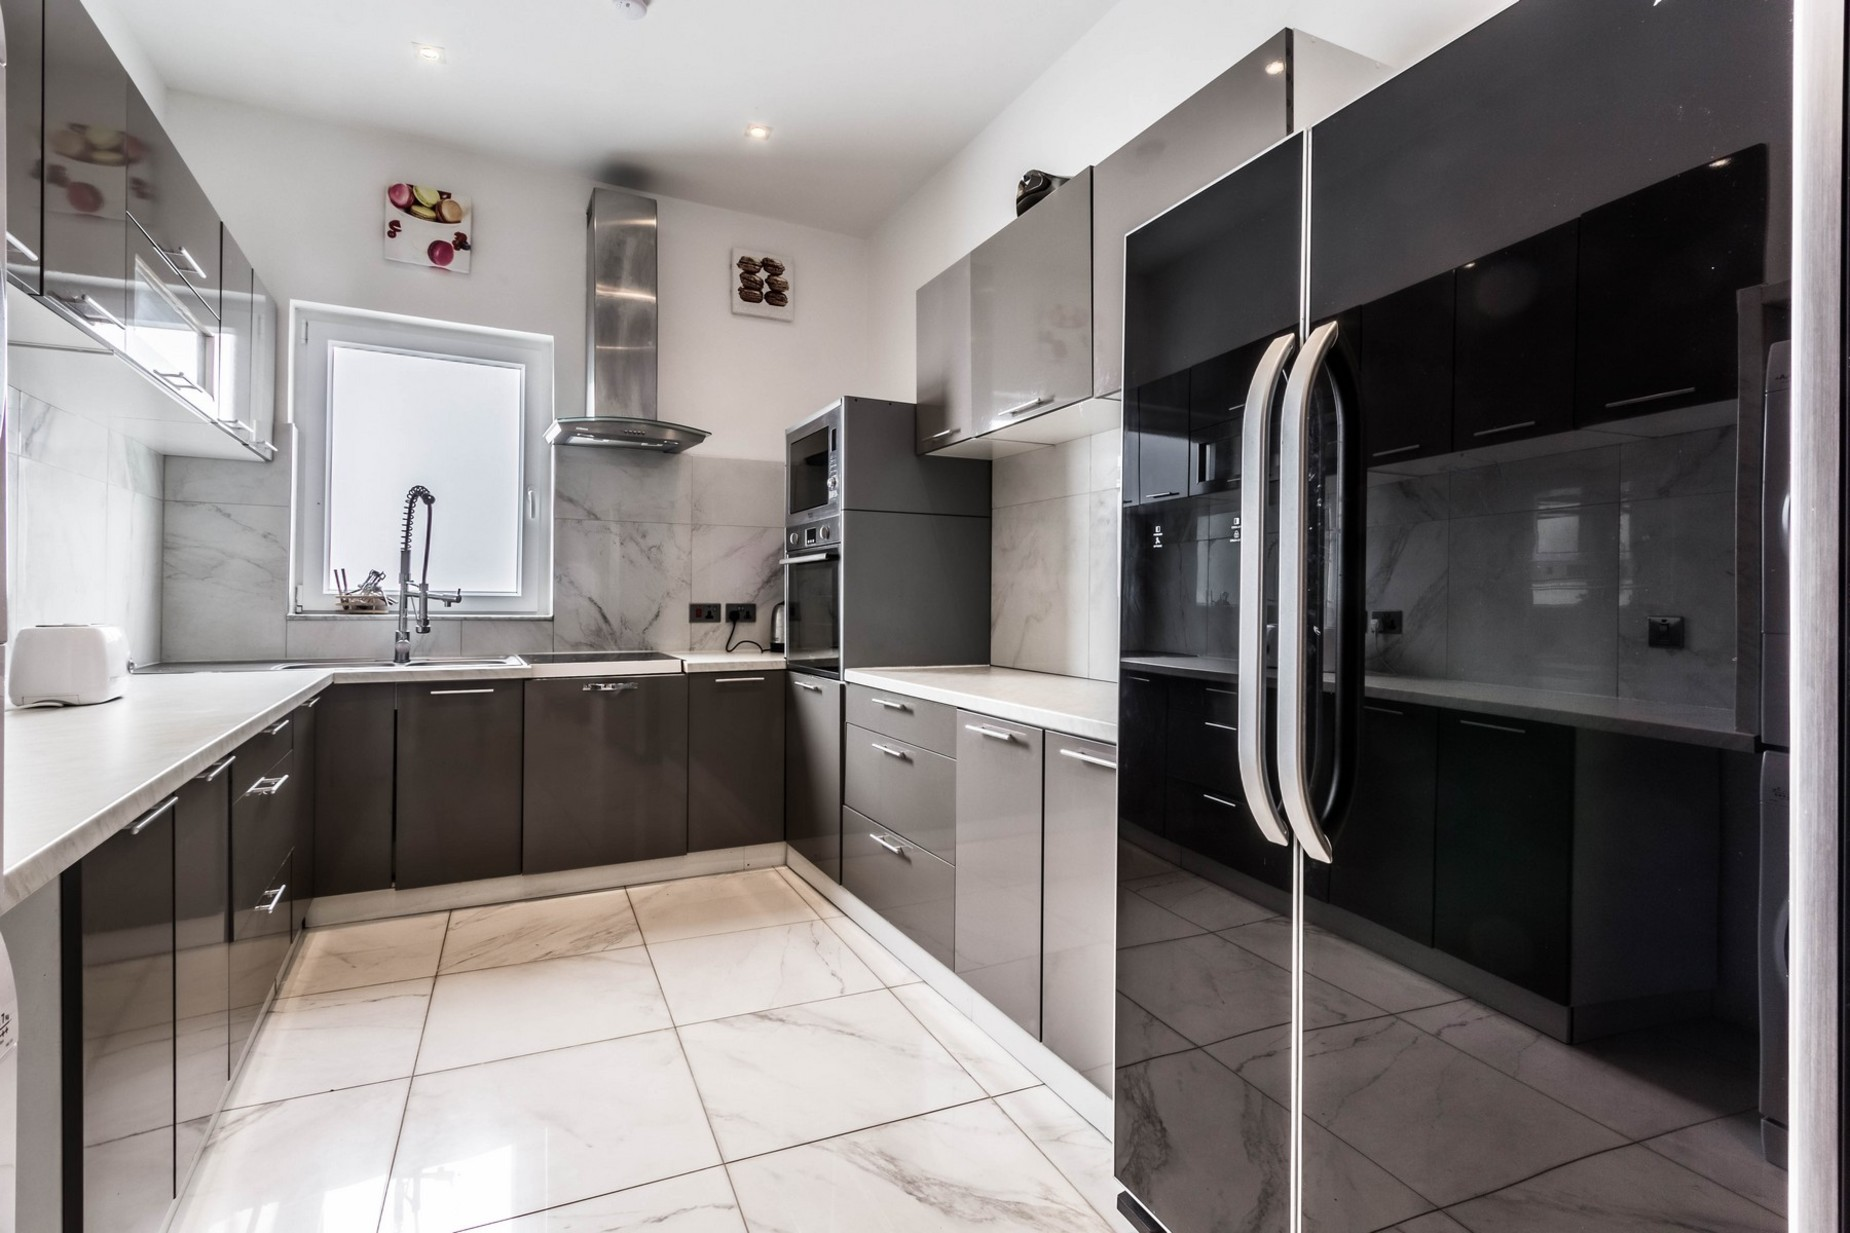 3 bed Penthouse For Sale in Sliema, Sliema - thumb 8